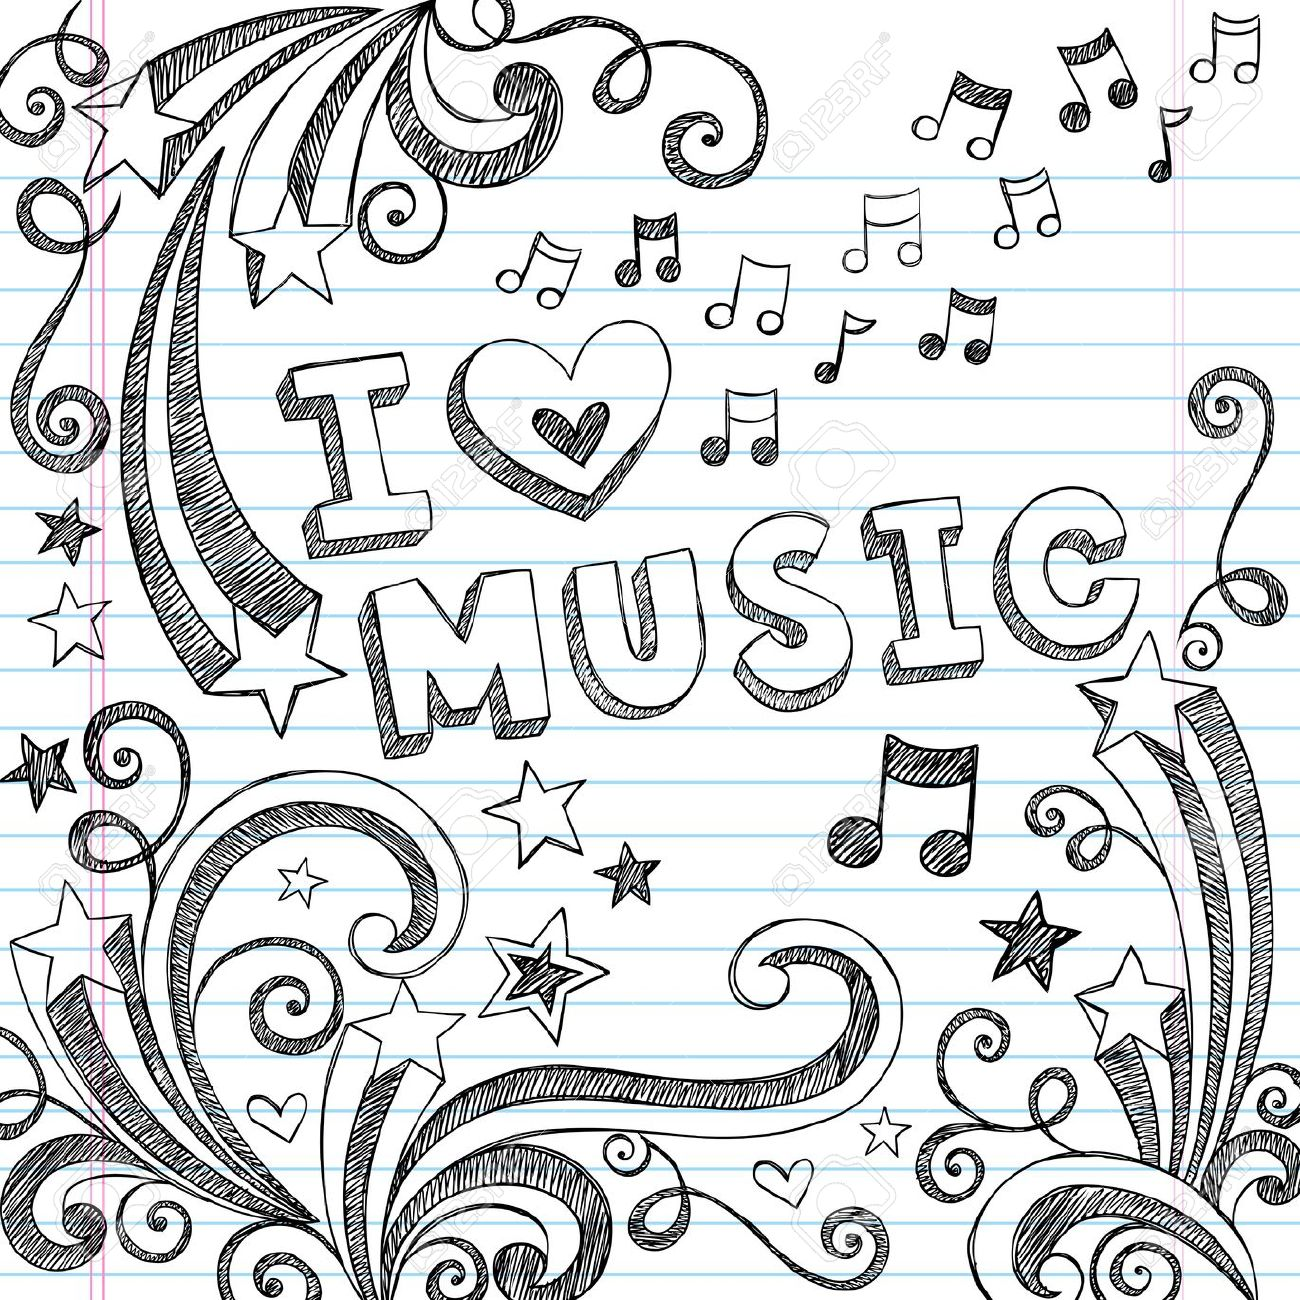 Drawn music notes doodle art Love With To Music Notebook